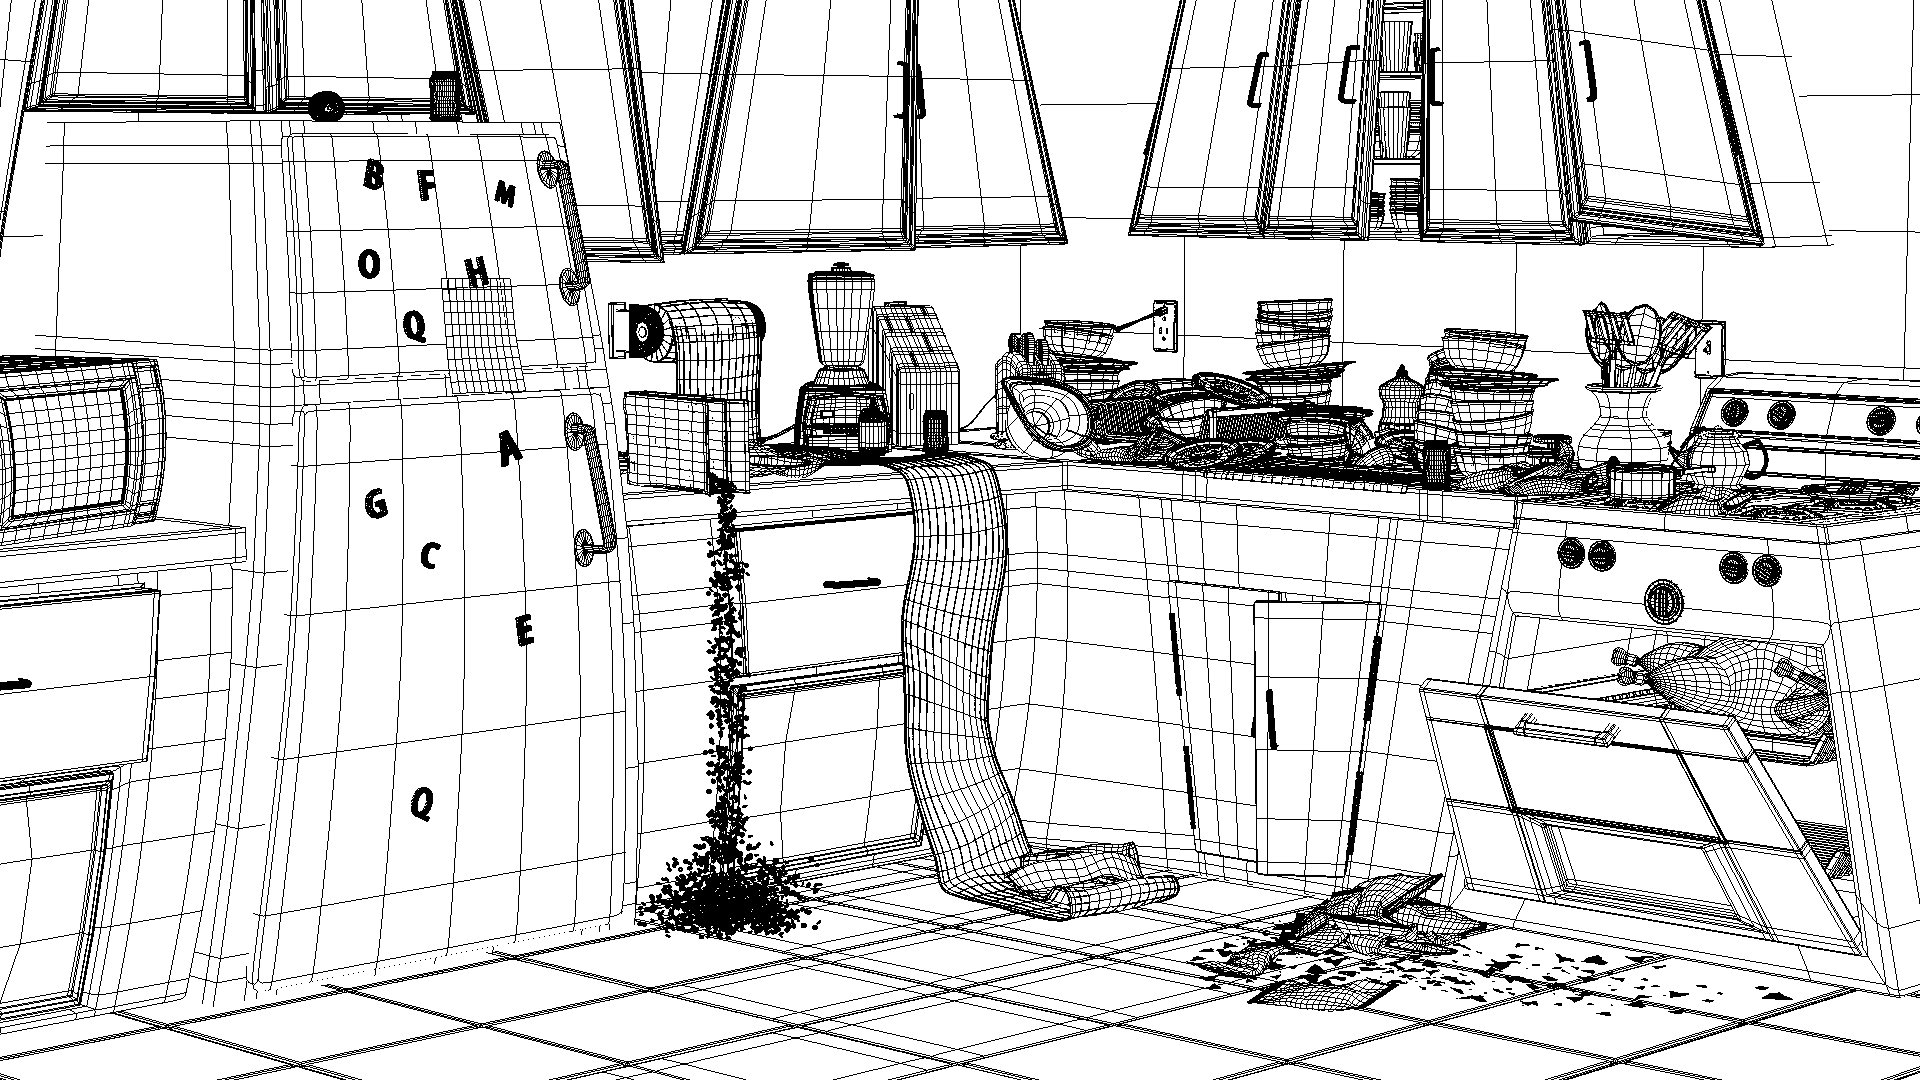 Black and white clipart room is a disaster clip transparent download Free Kitchen Mess Cliparts, Download Free Clip Art, Free Clip Art on ... clip transparent download